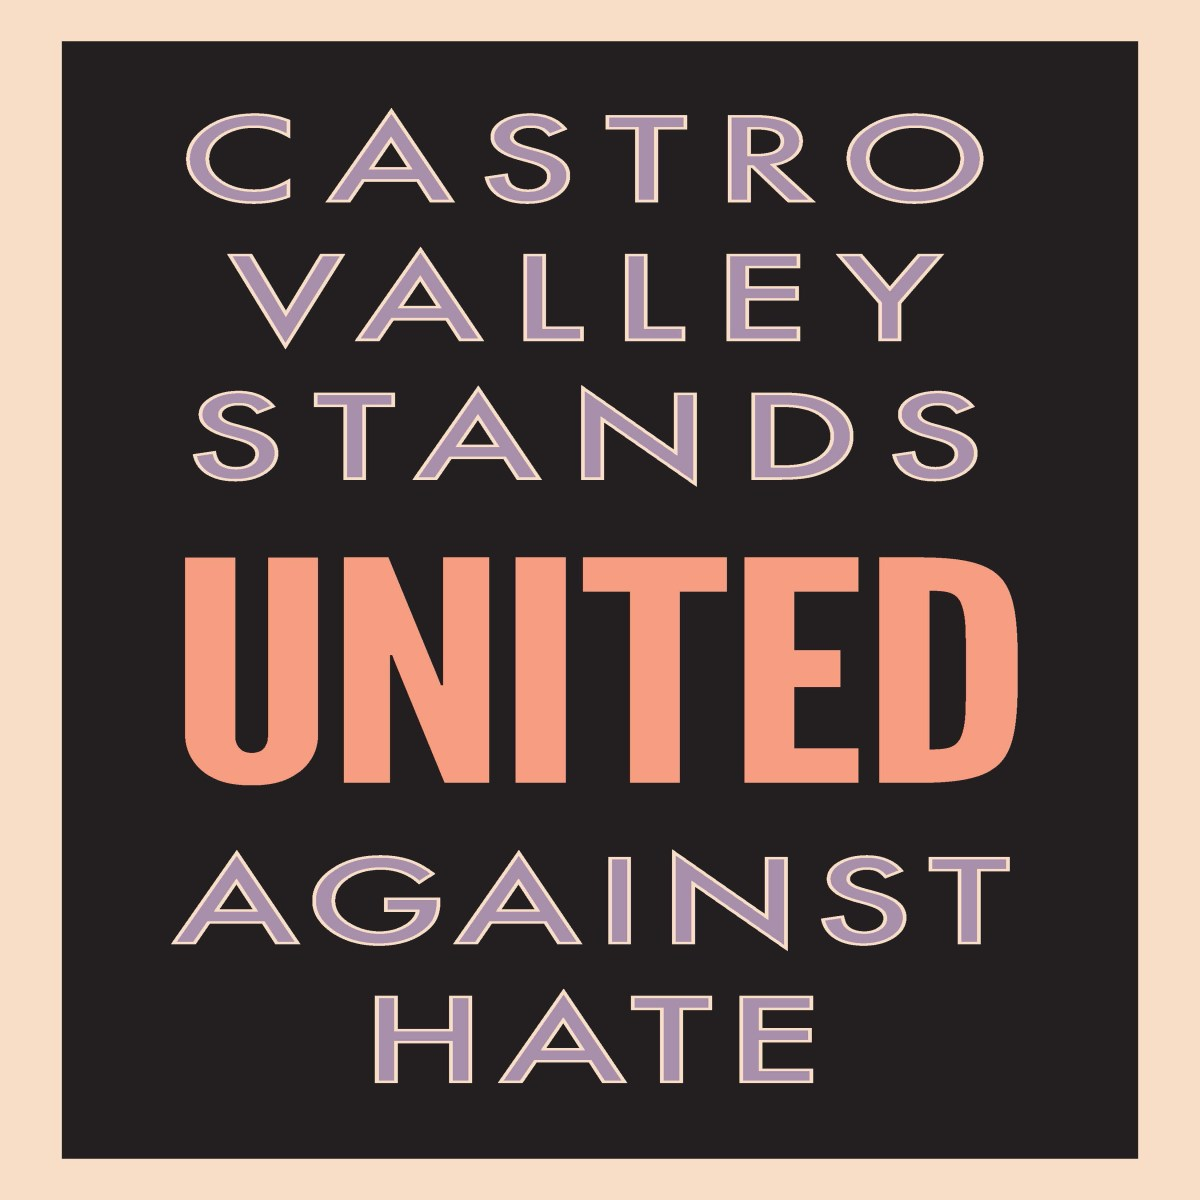 Castro Valley United Against Hate March and Poetry Slam coming up